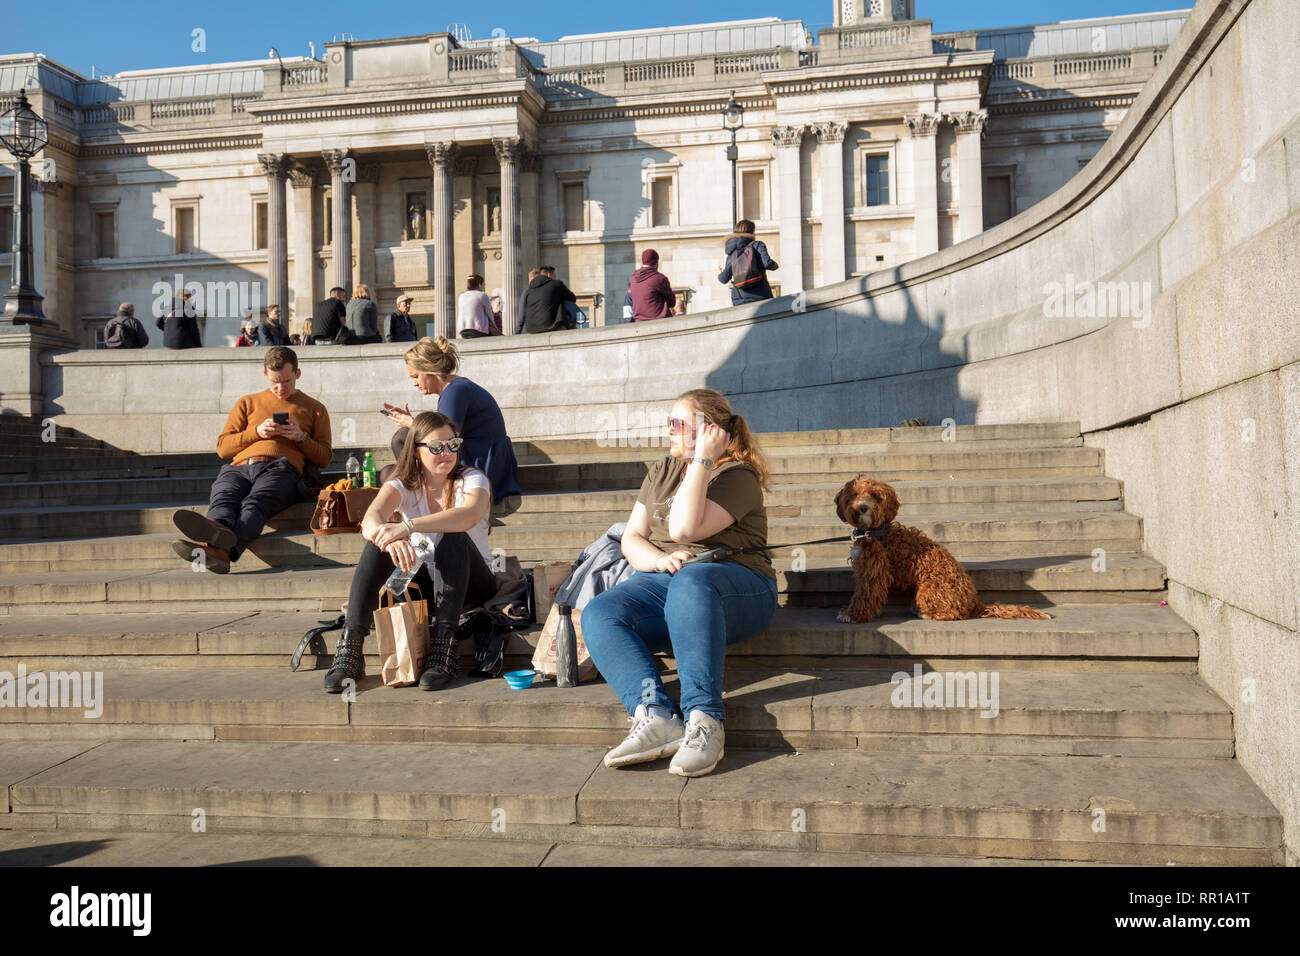 People, family and friends, enjoying a fun day, walking, sitting and relaxing on Trafalgar Square of London, UK, on a warm spring like day in February - Stock Image